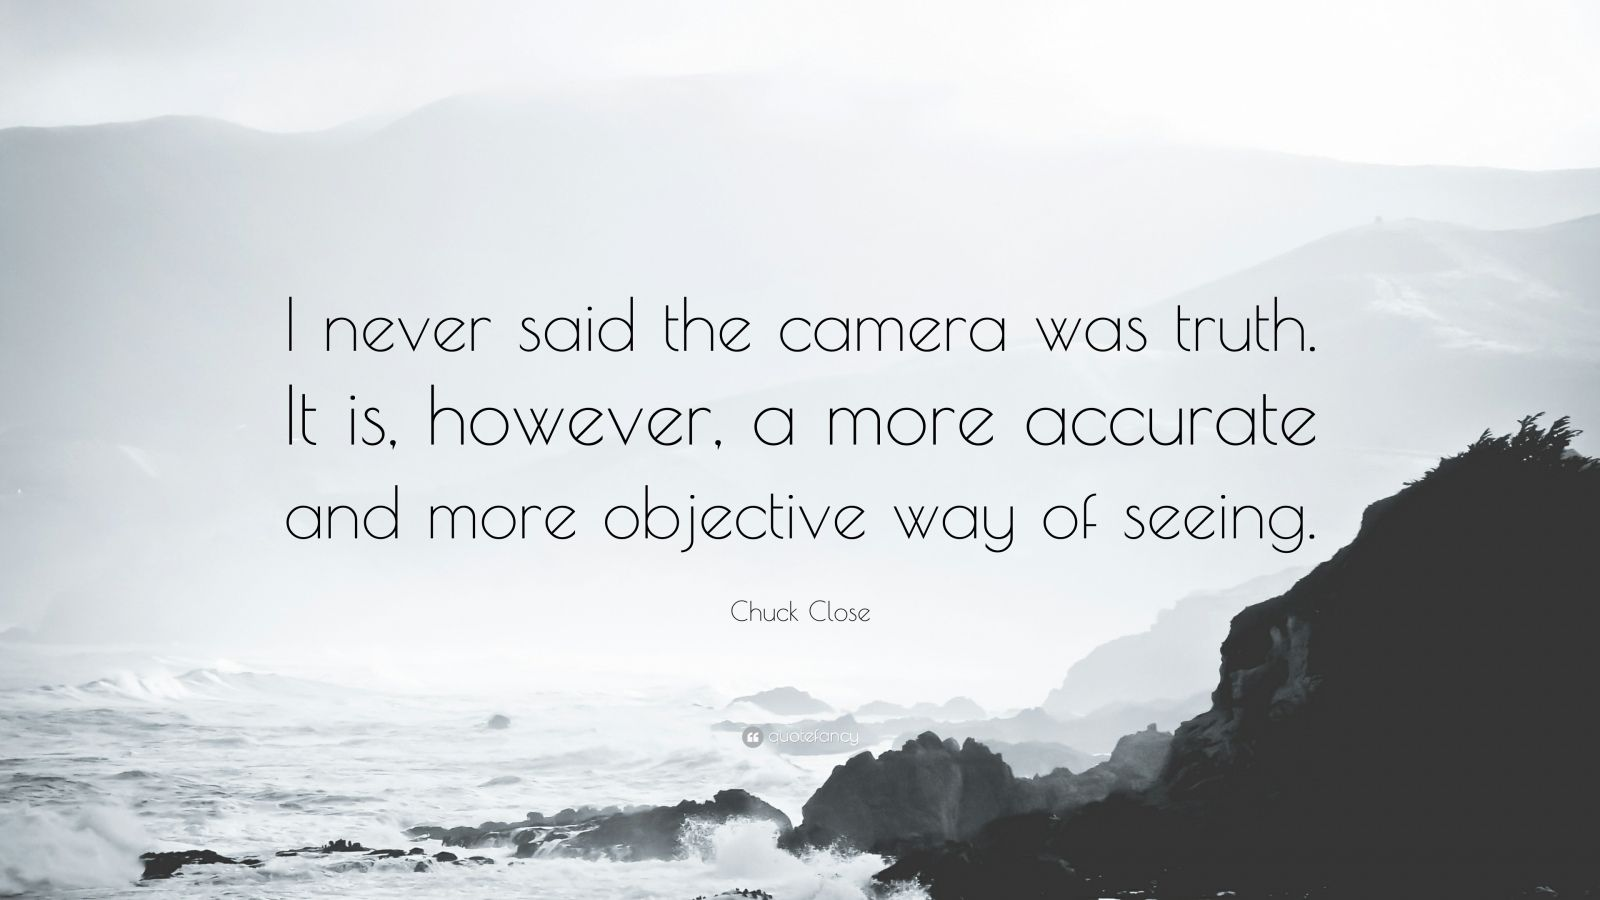 """Chuck Close Quote: """"I never said the camera was truth. It is, however, a more accurate and more objective way of seeing."""""""